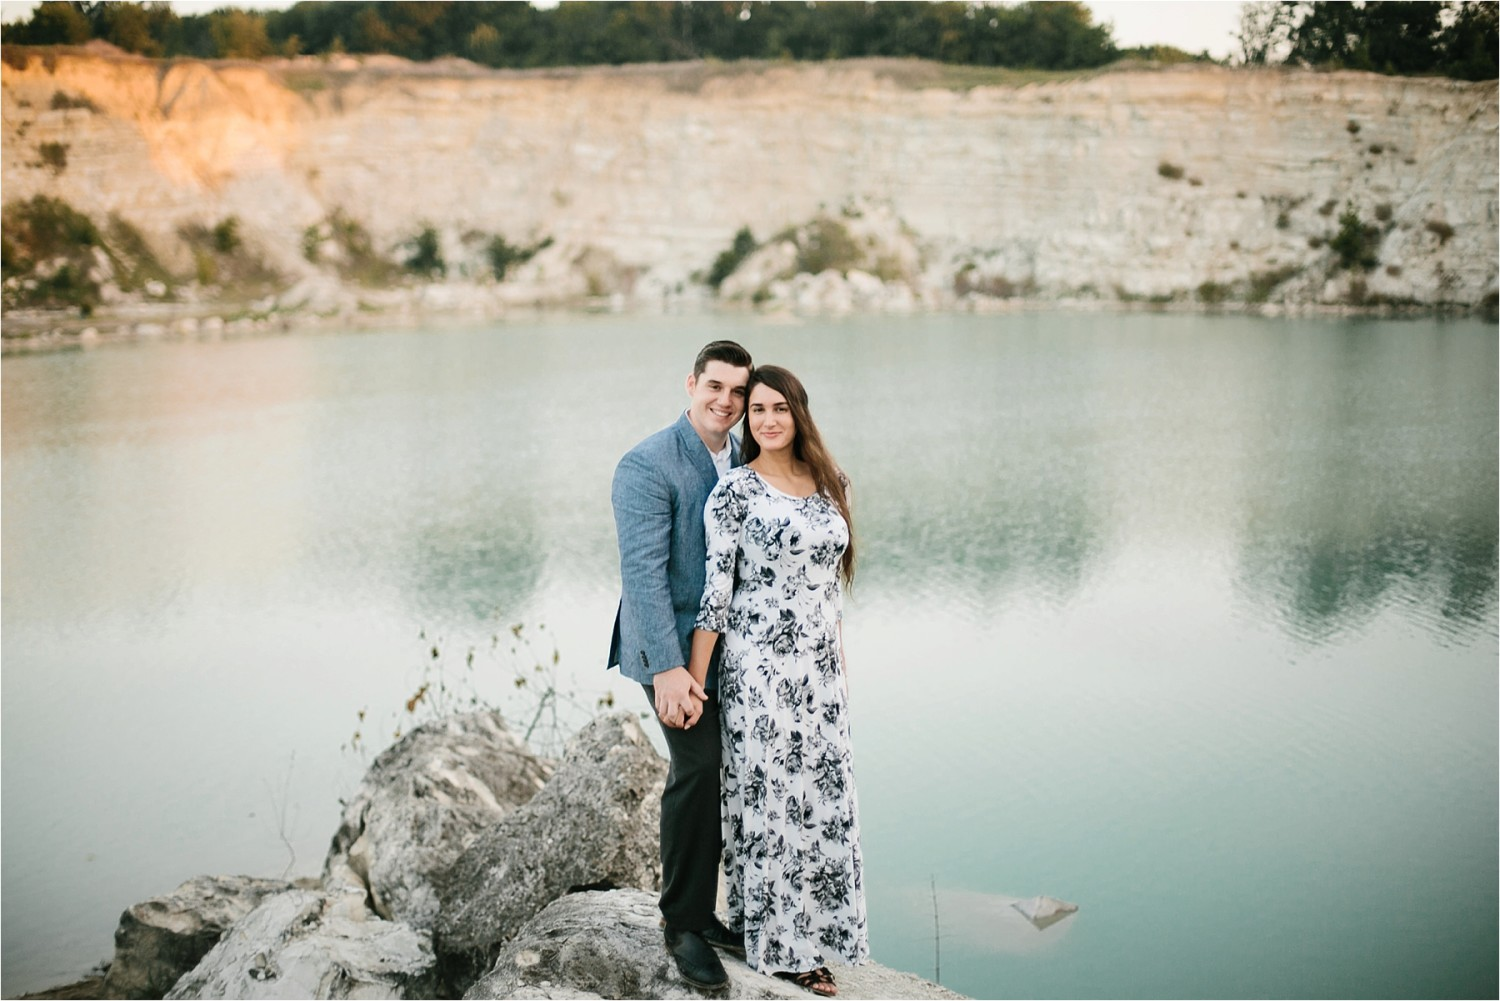 an-intimate-sunrise-session-by-north-texas-wedding-photographer-rachel-meagan-photography-_-16